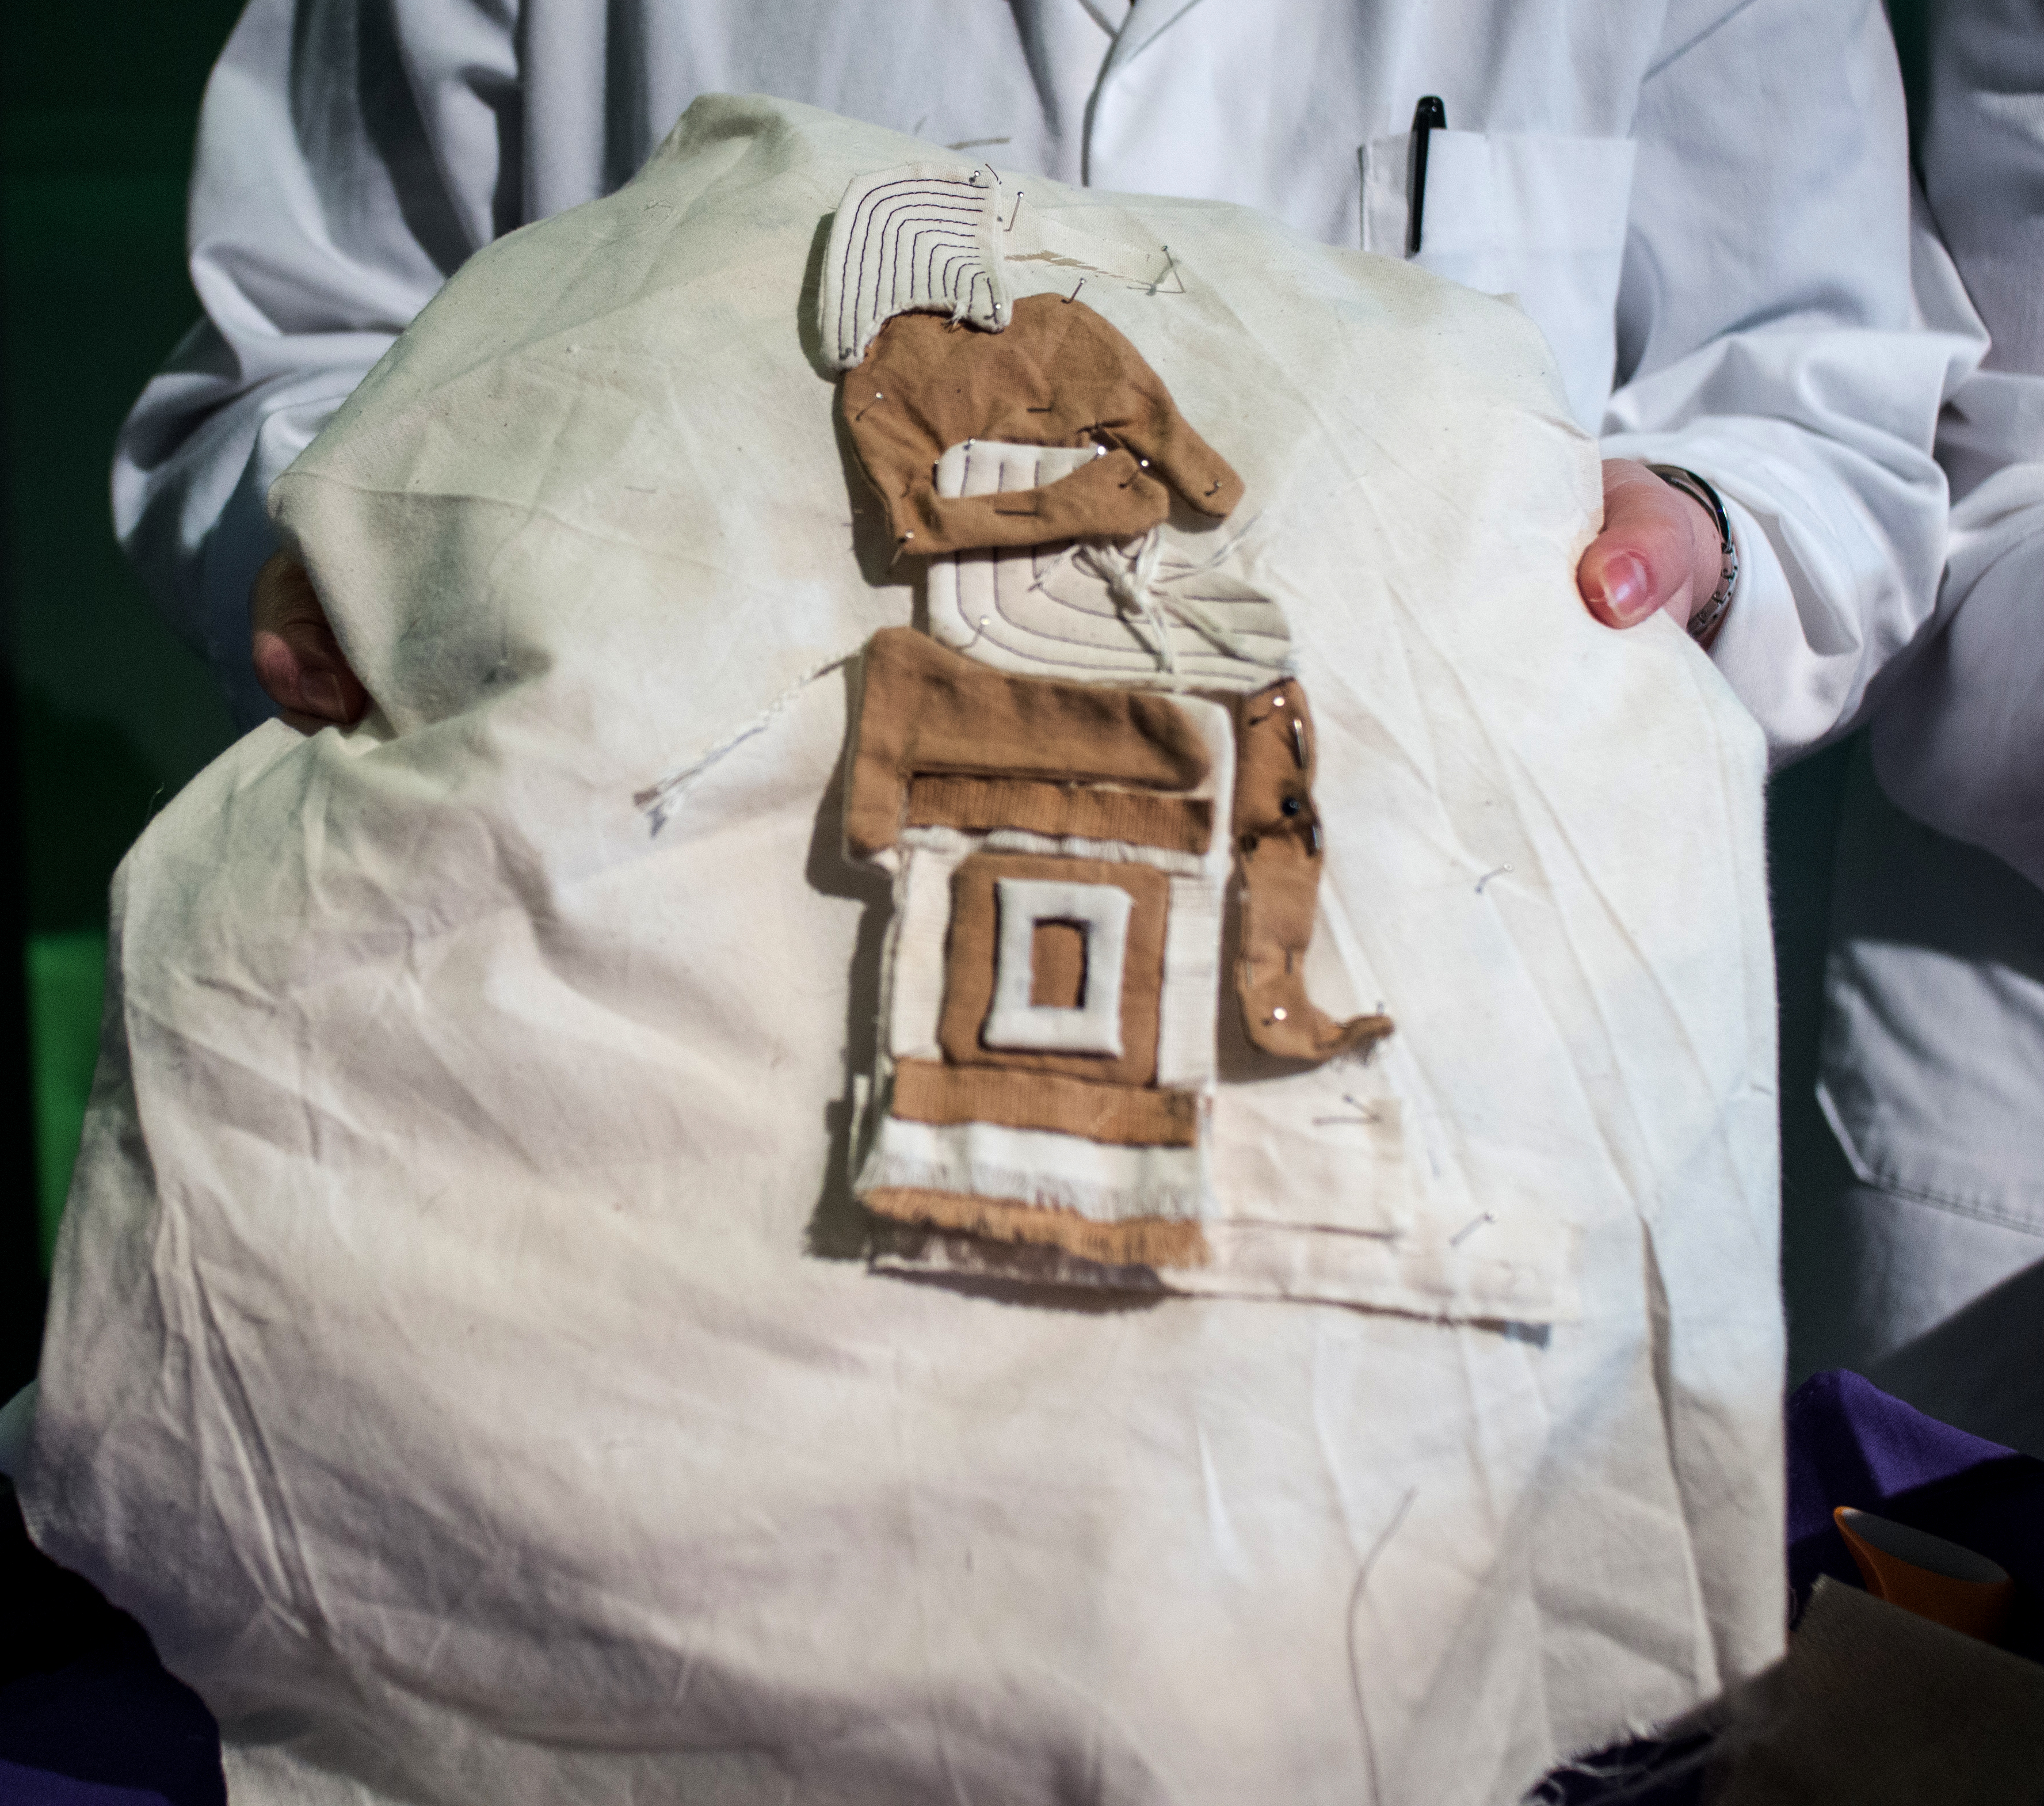 Re-rolling' a Mummy: an Experimental Spectacle at Manchester